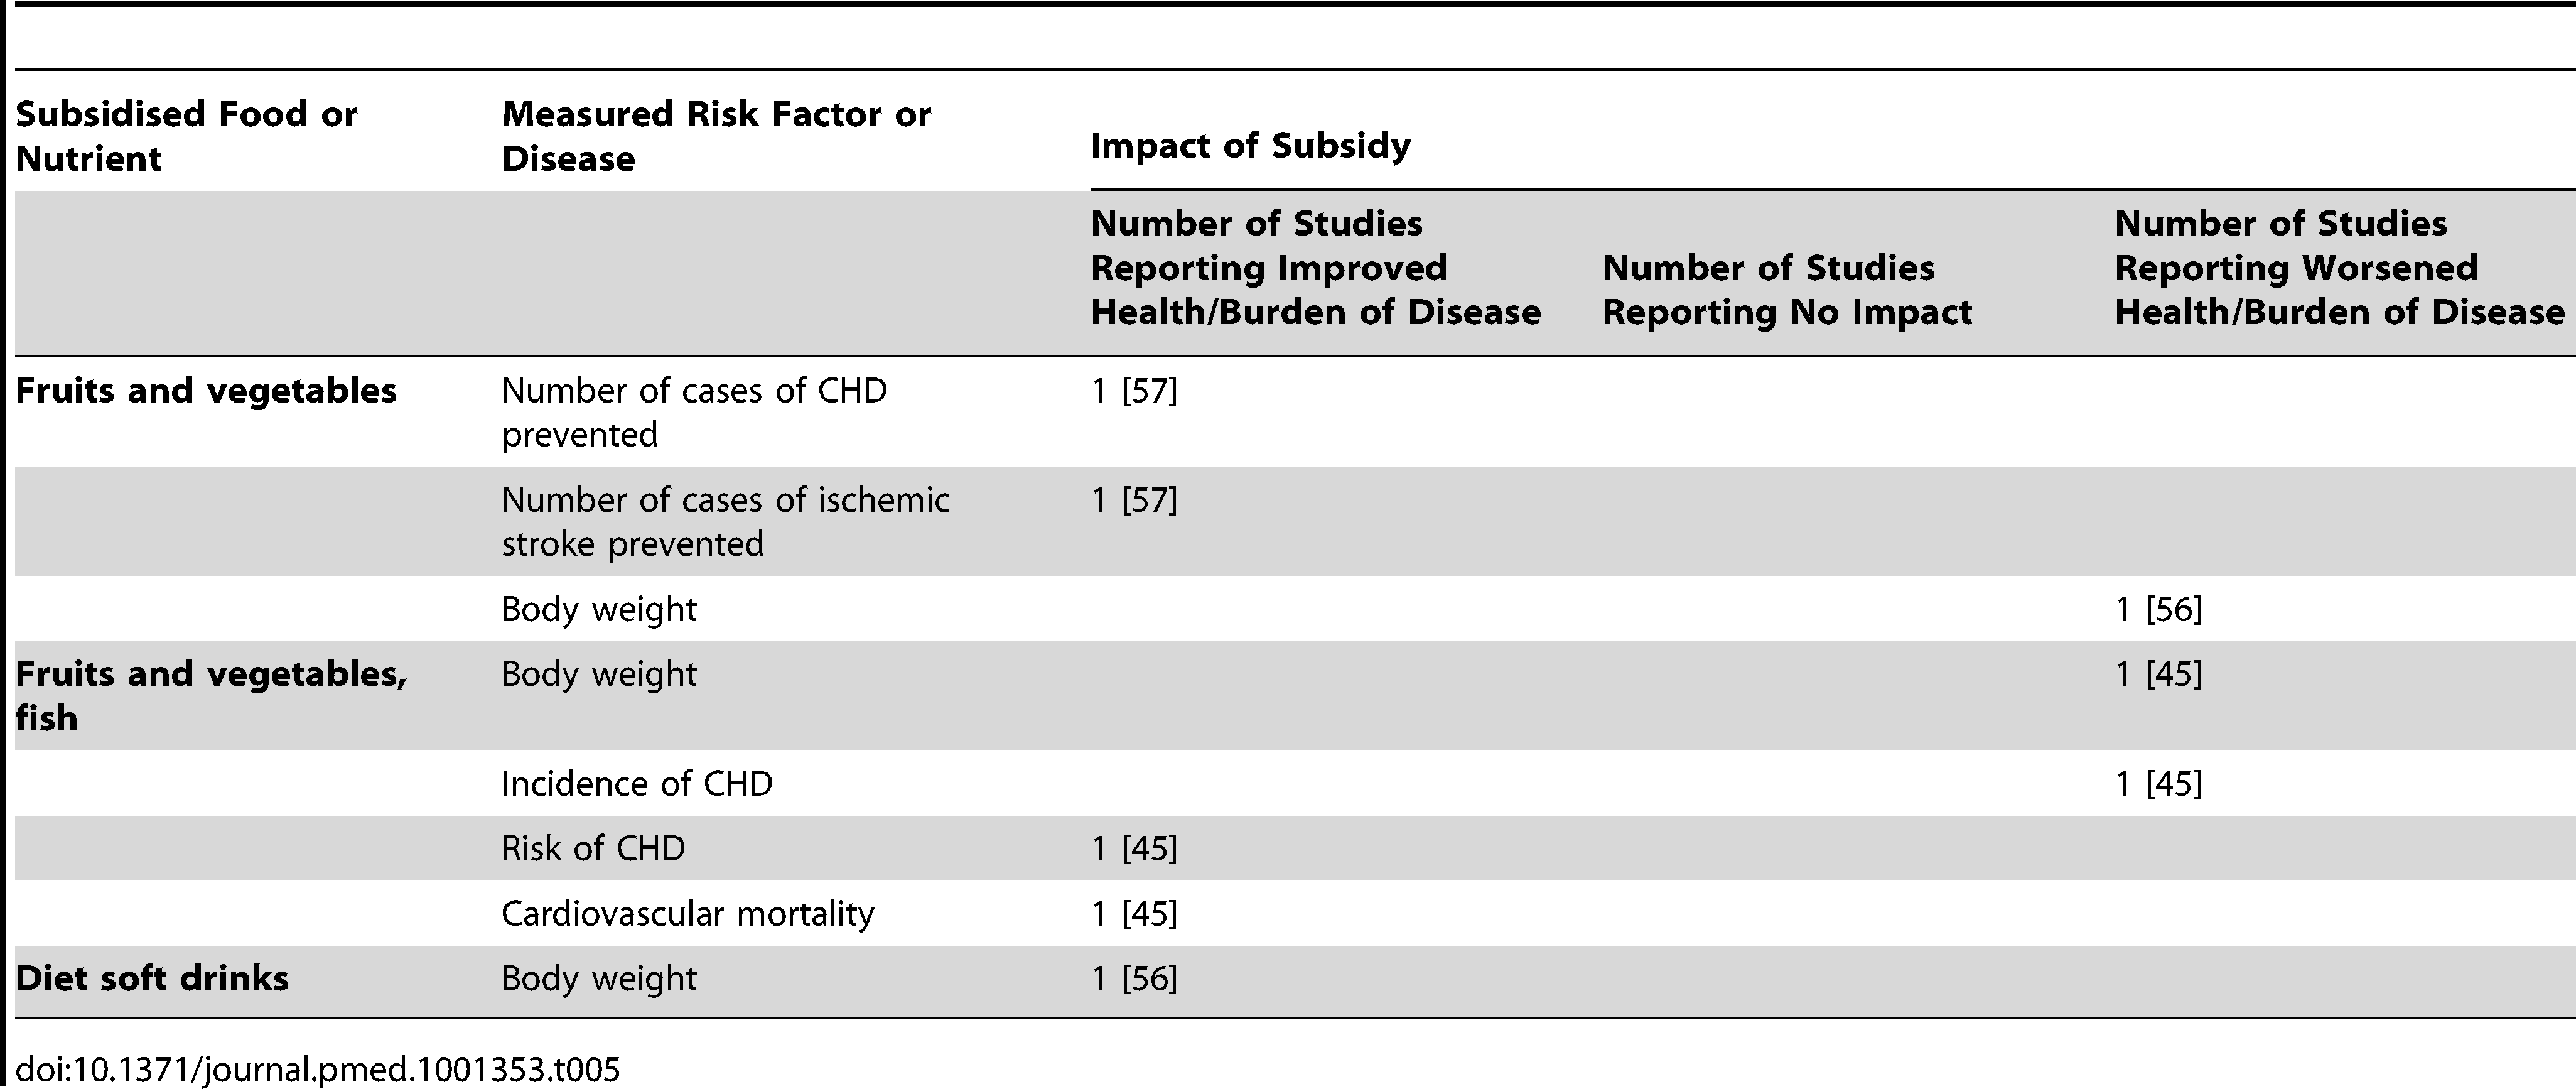 Summary of simulation modelling studies assessing the impact of subsidies on health/disease (<i>n</i> = 3 studies).